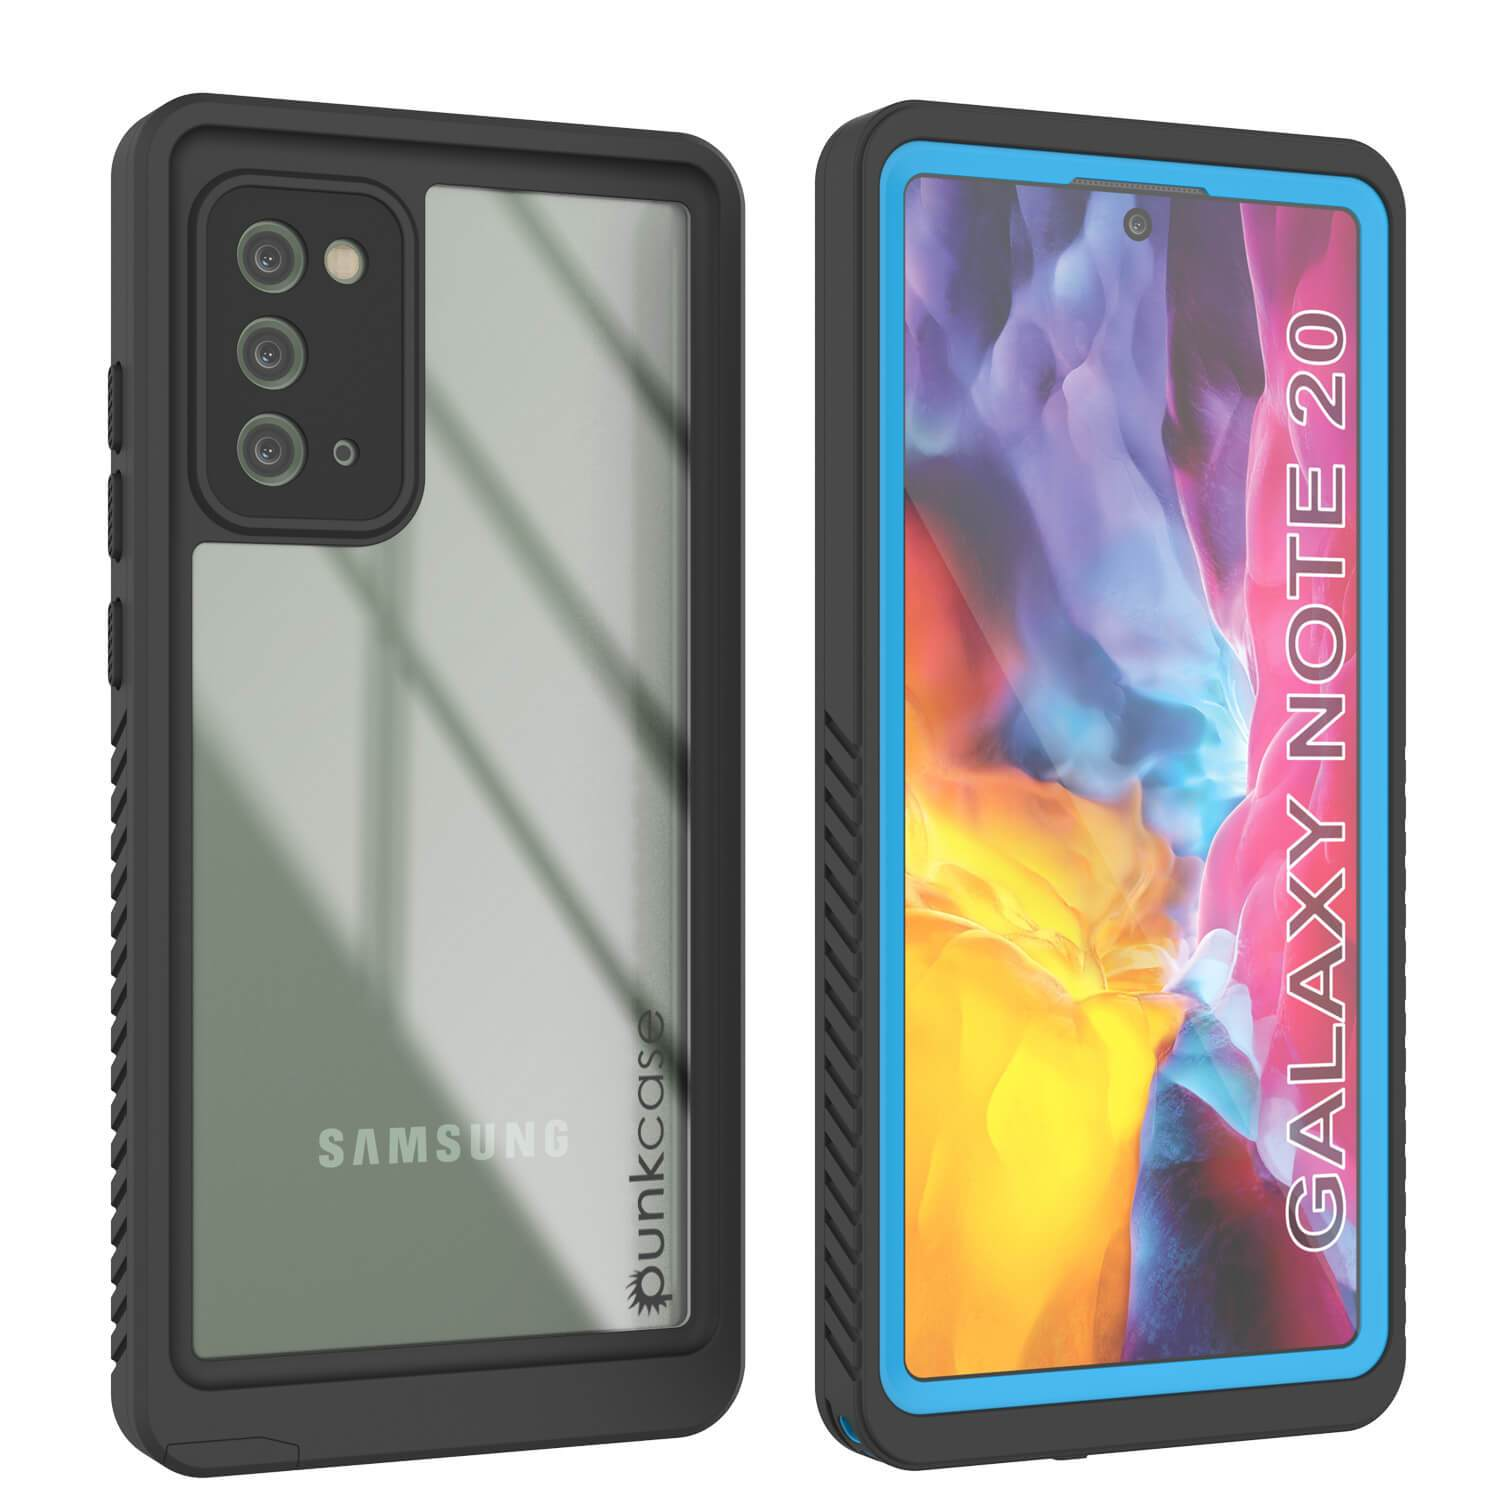 Galaxy Note 20 Case, Punkcase [Extreme Series] Armor Cover W/ Built In Screen Protector [Light Blue]